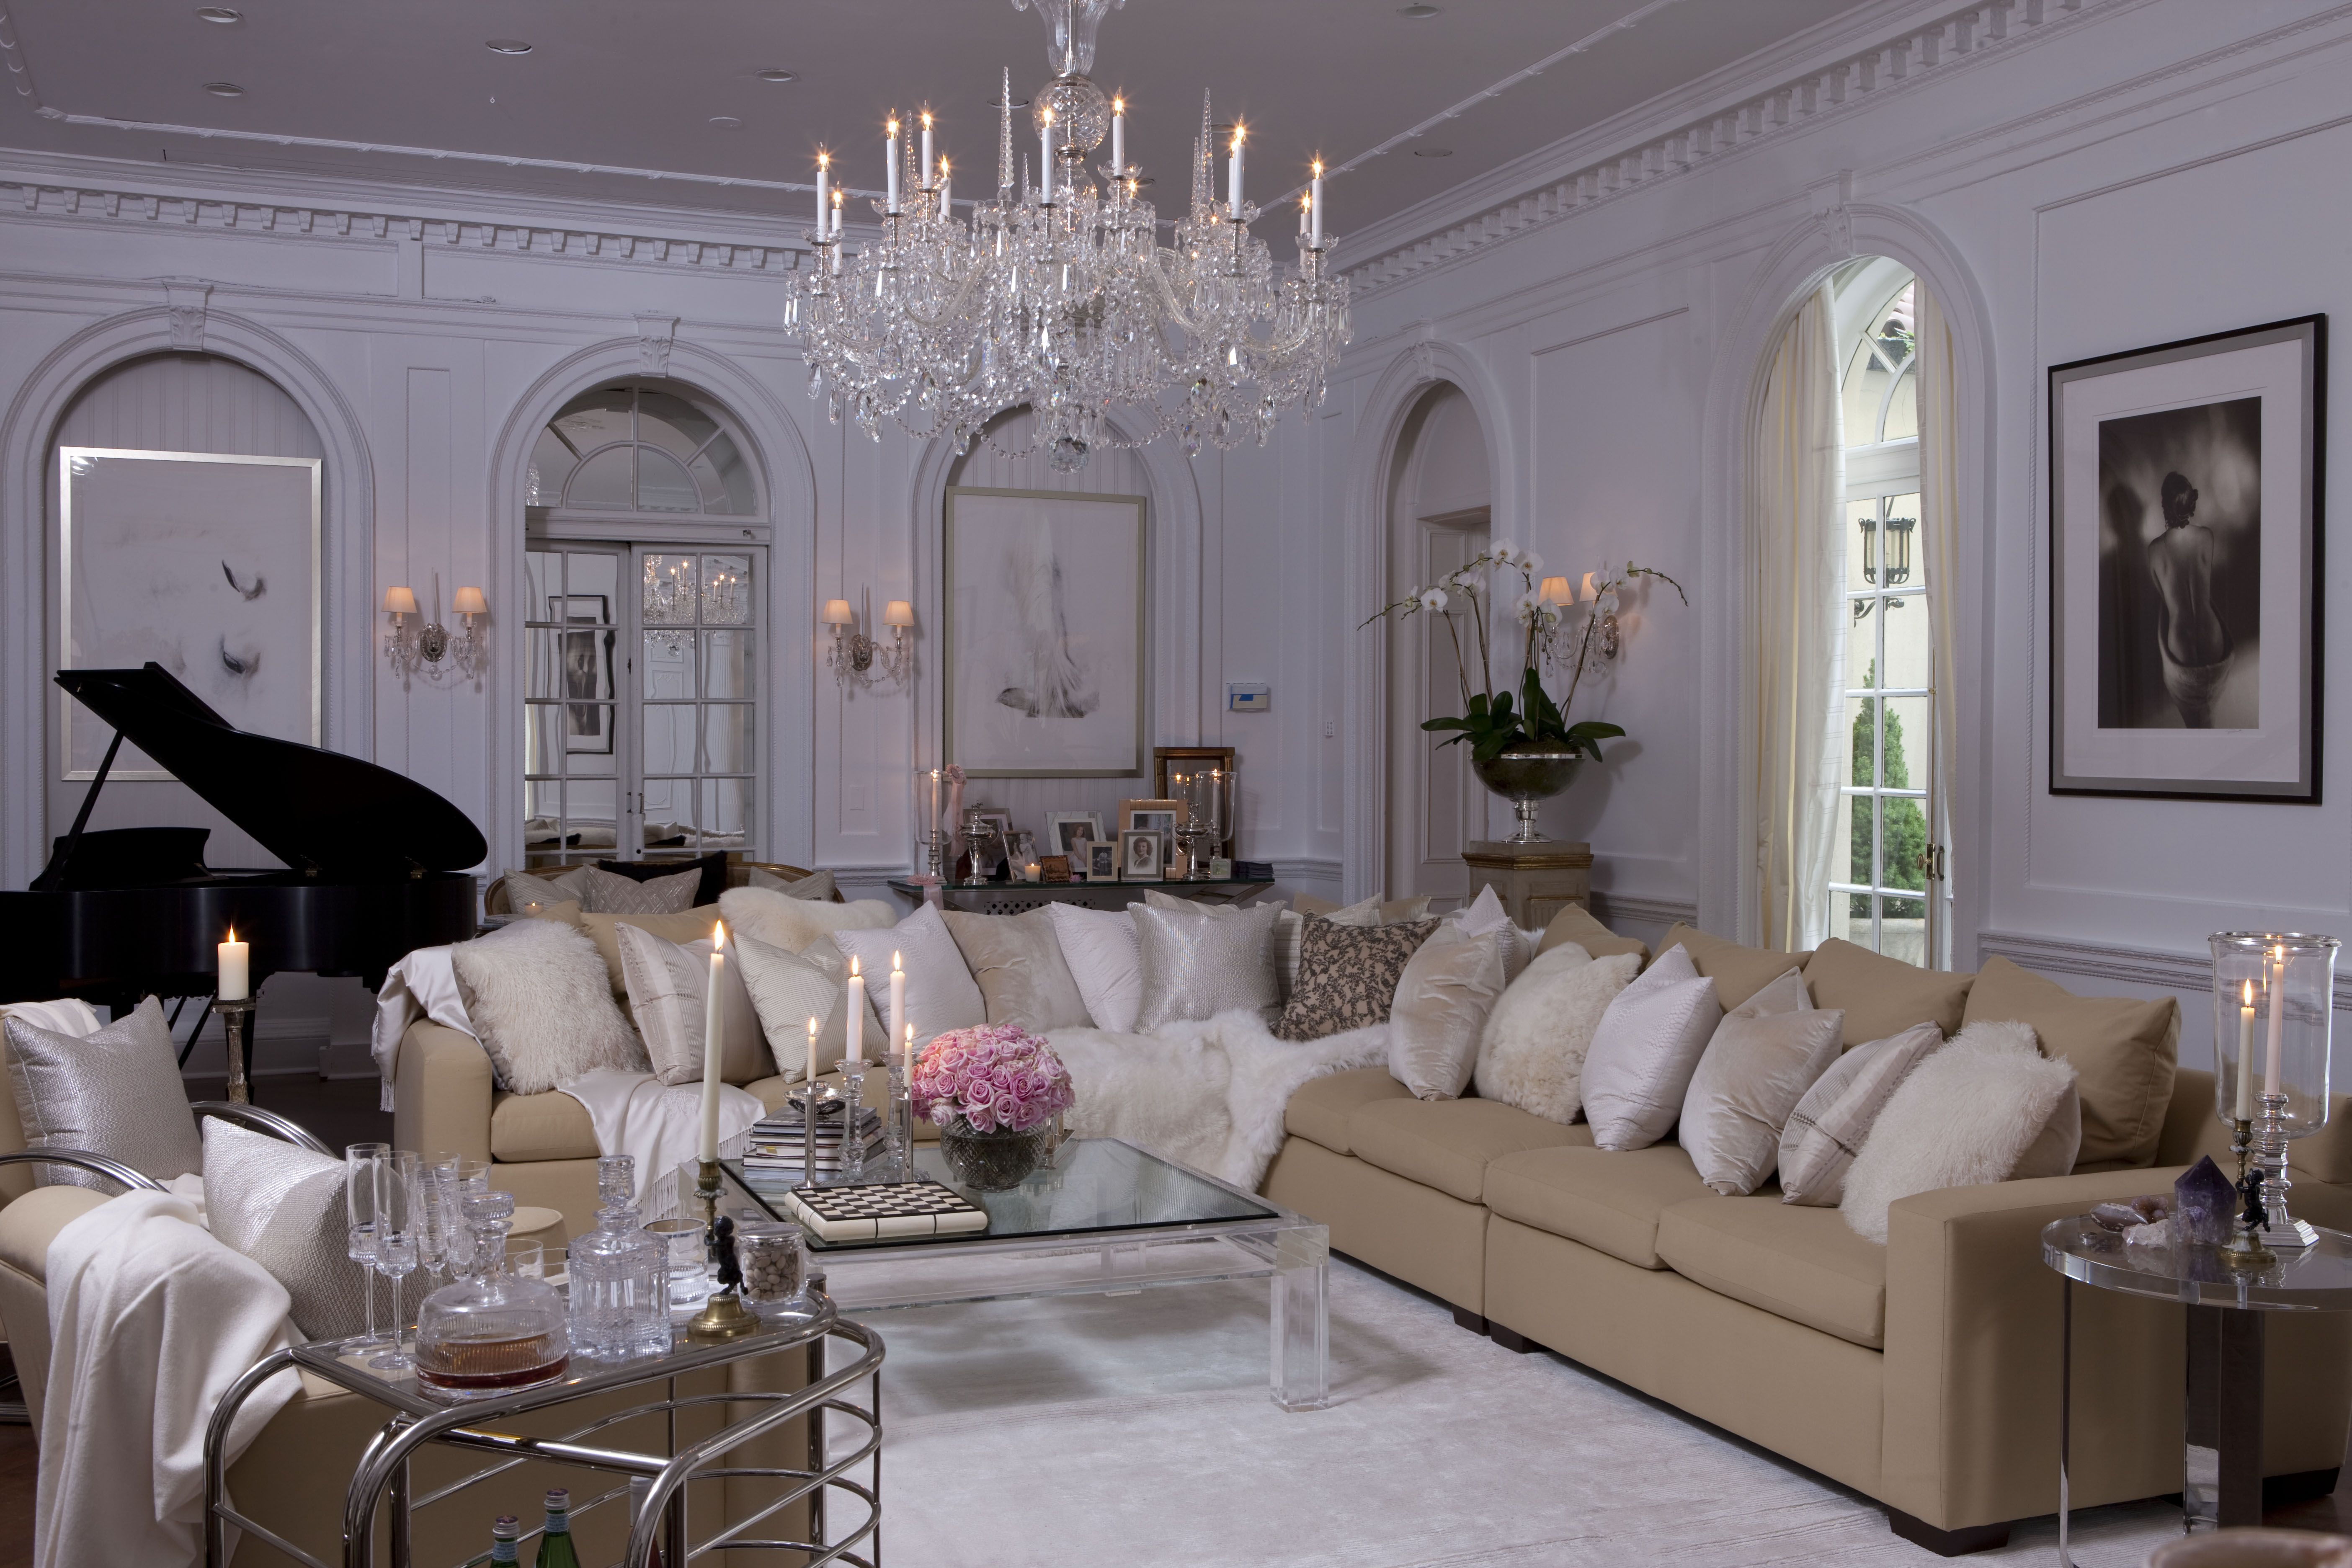 Pin By Allie Spector On Glam Decor